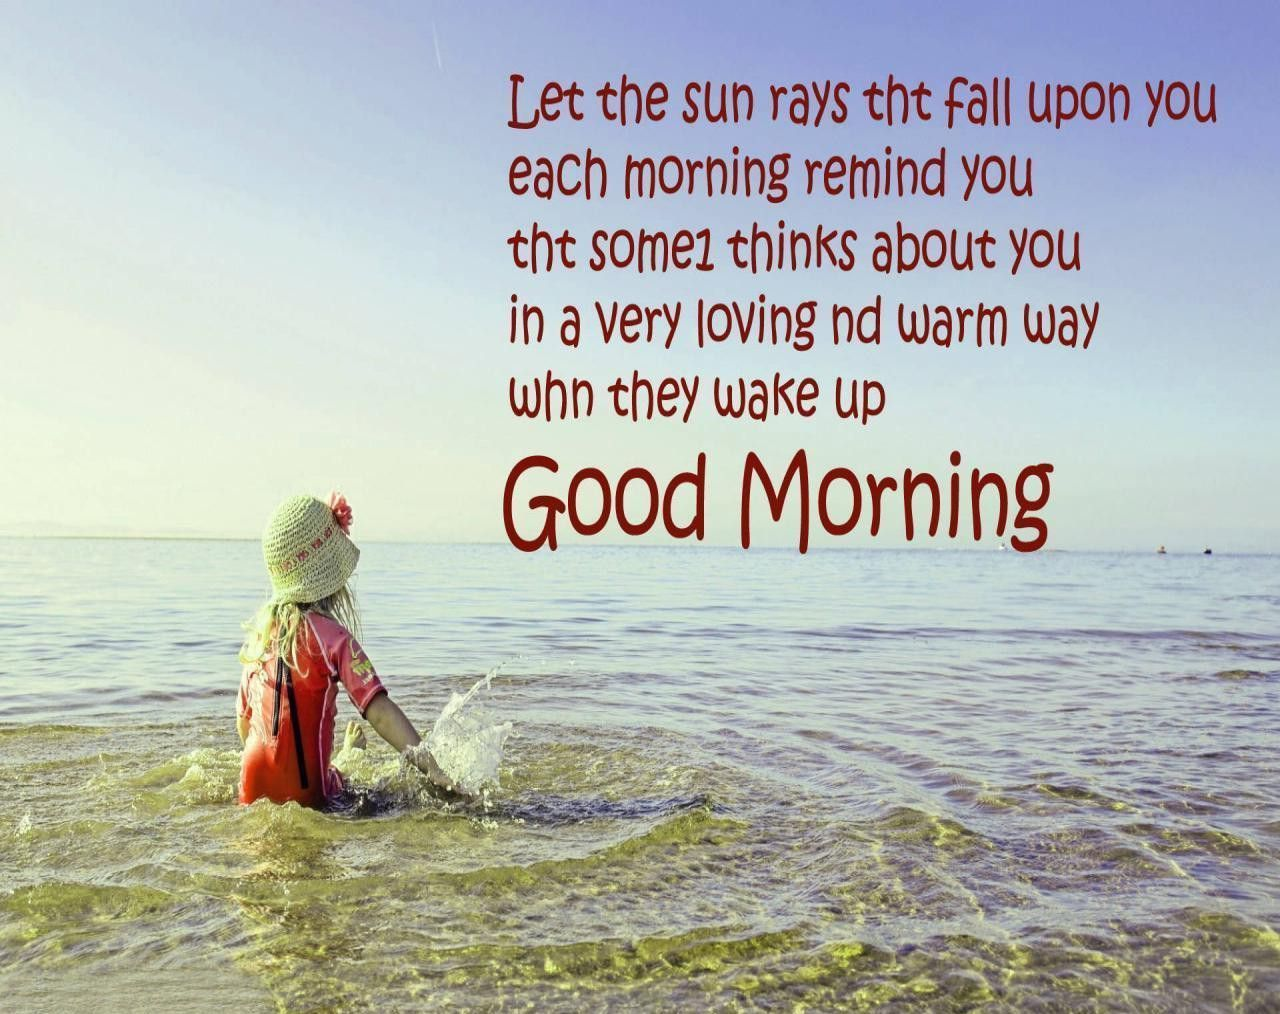 Good Morning Love Quotes Good Morning Cards With Love Images  Cute Wall Paper  Pinterest